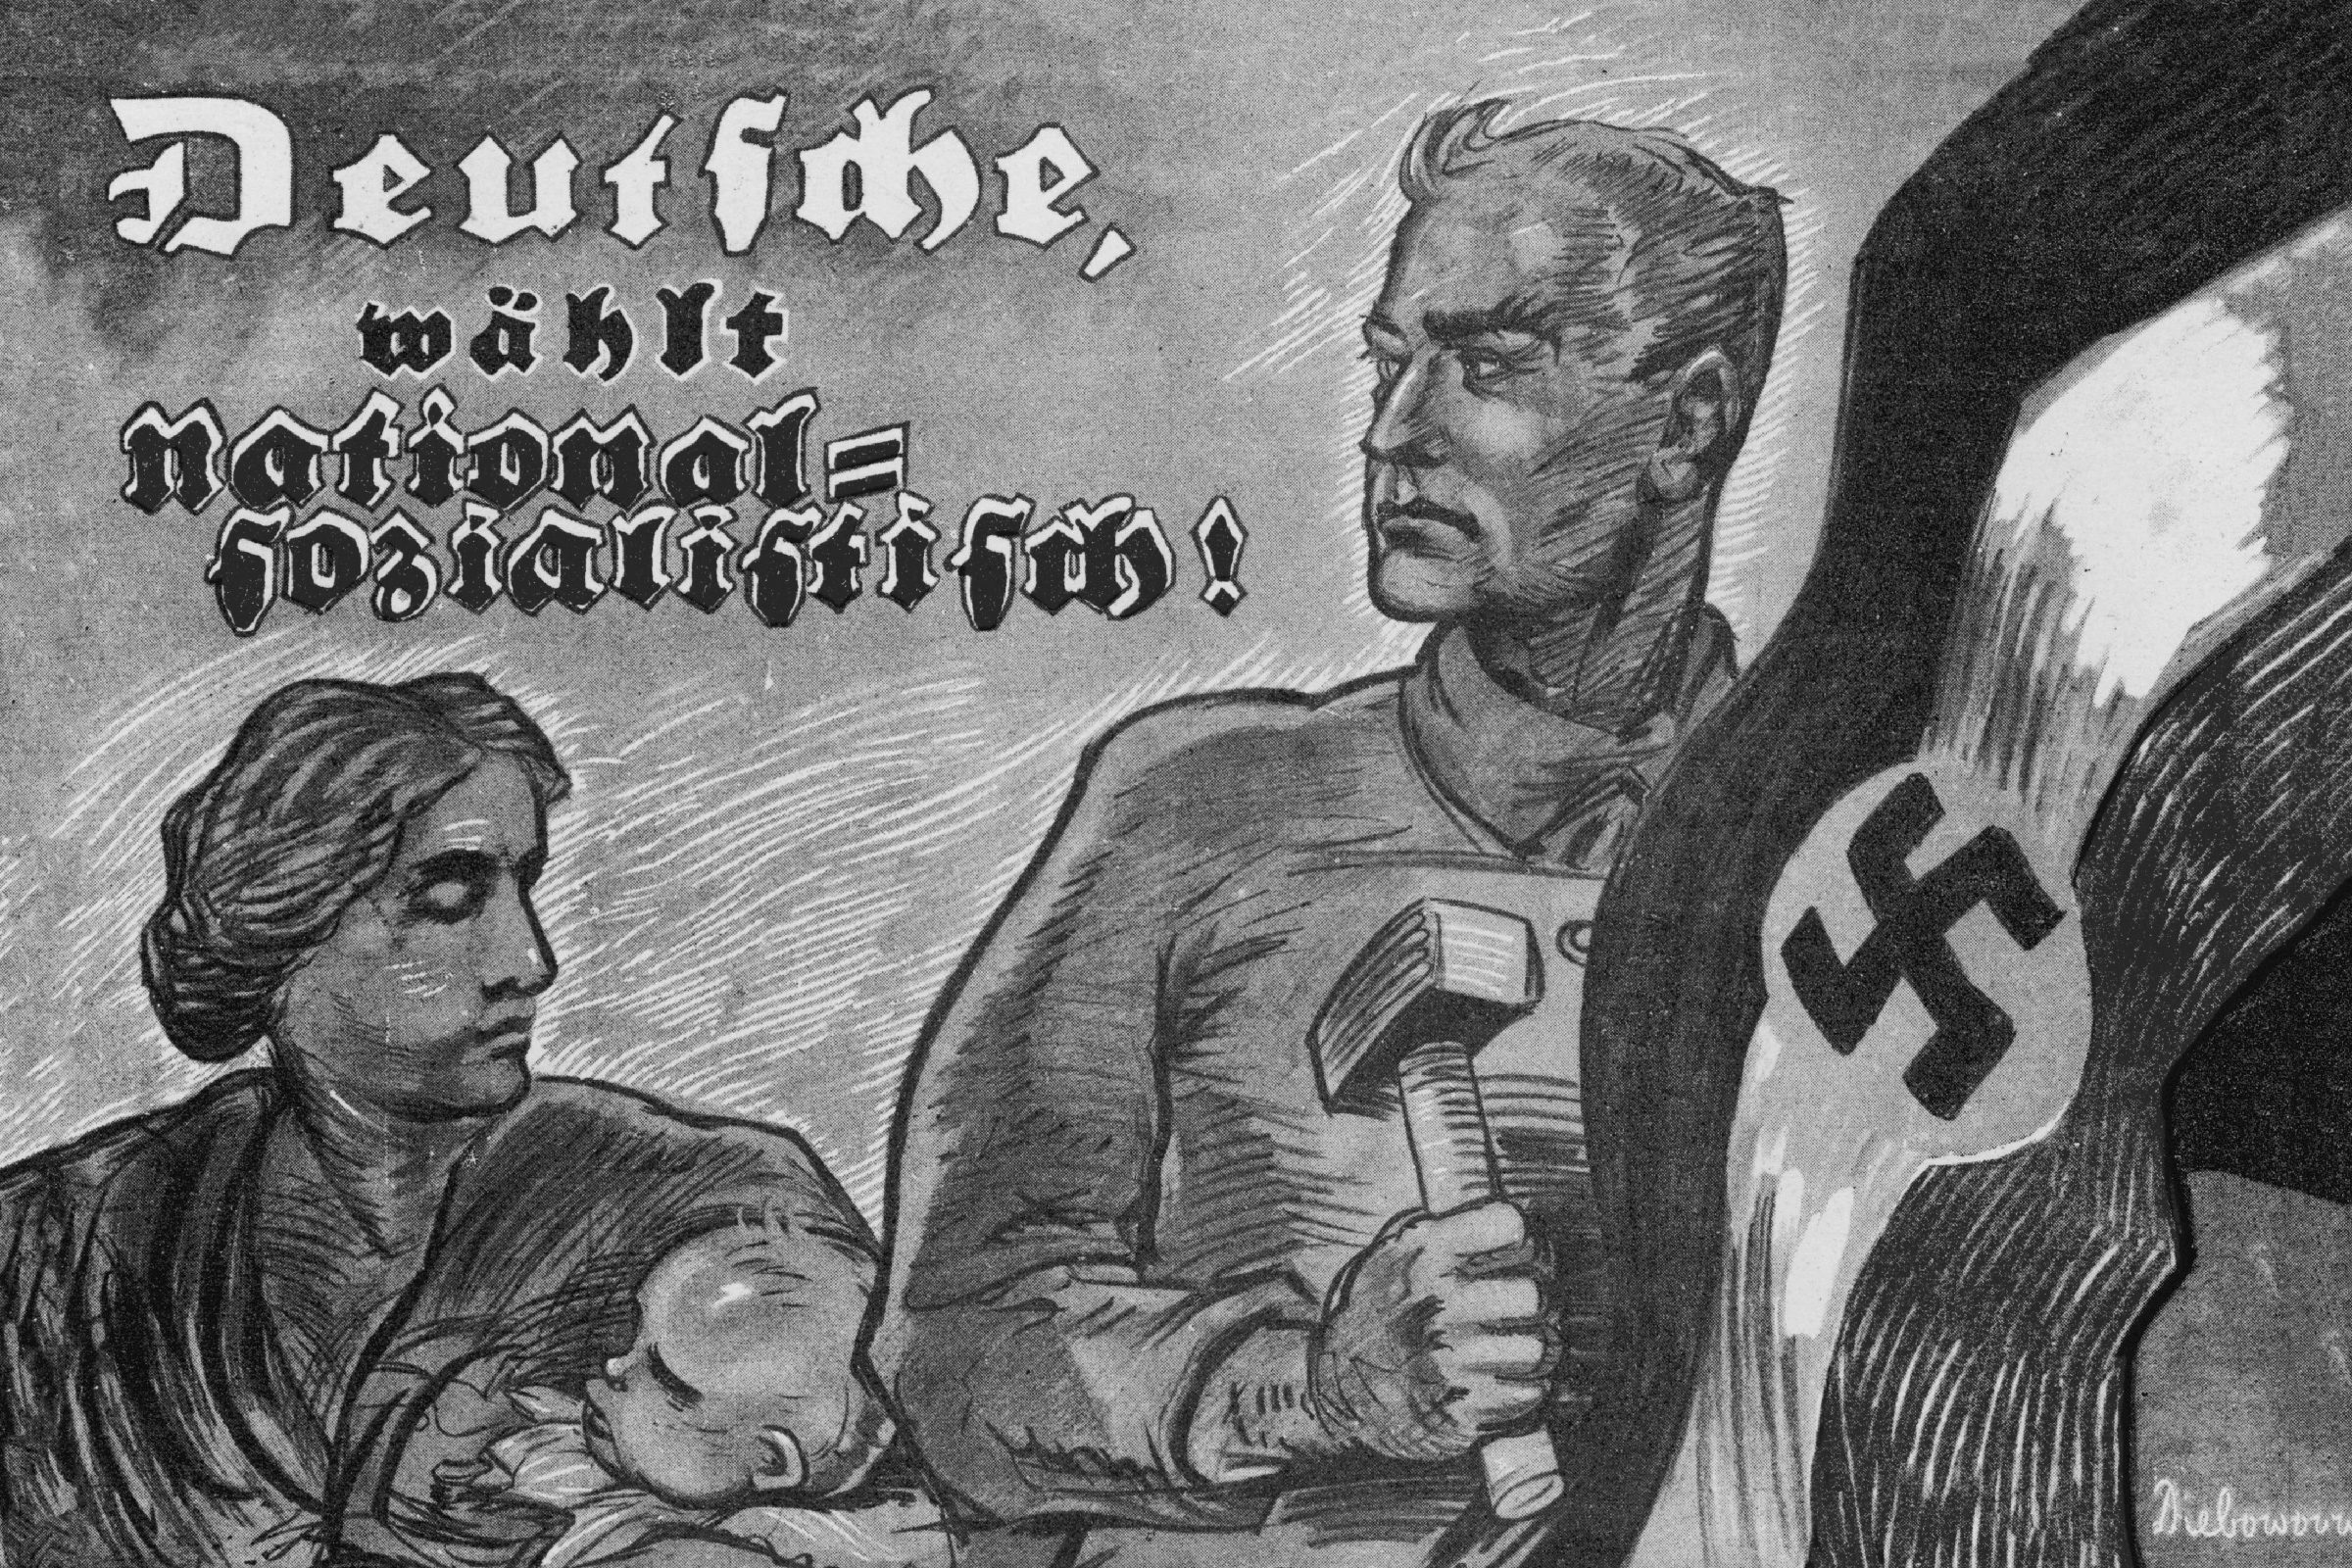 'Germany Chooses National Socialism !' - But This Confident Affirmation Was Premature by Nearly 10 Years 07-Dec-24